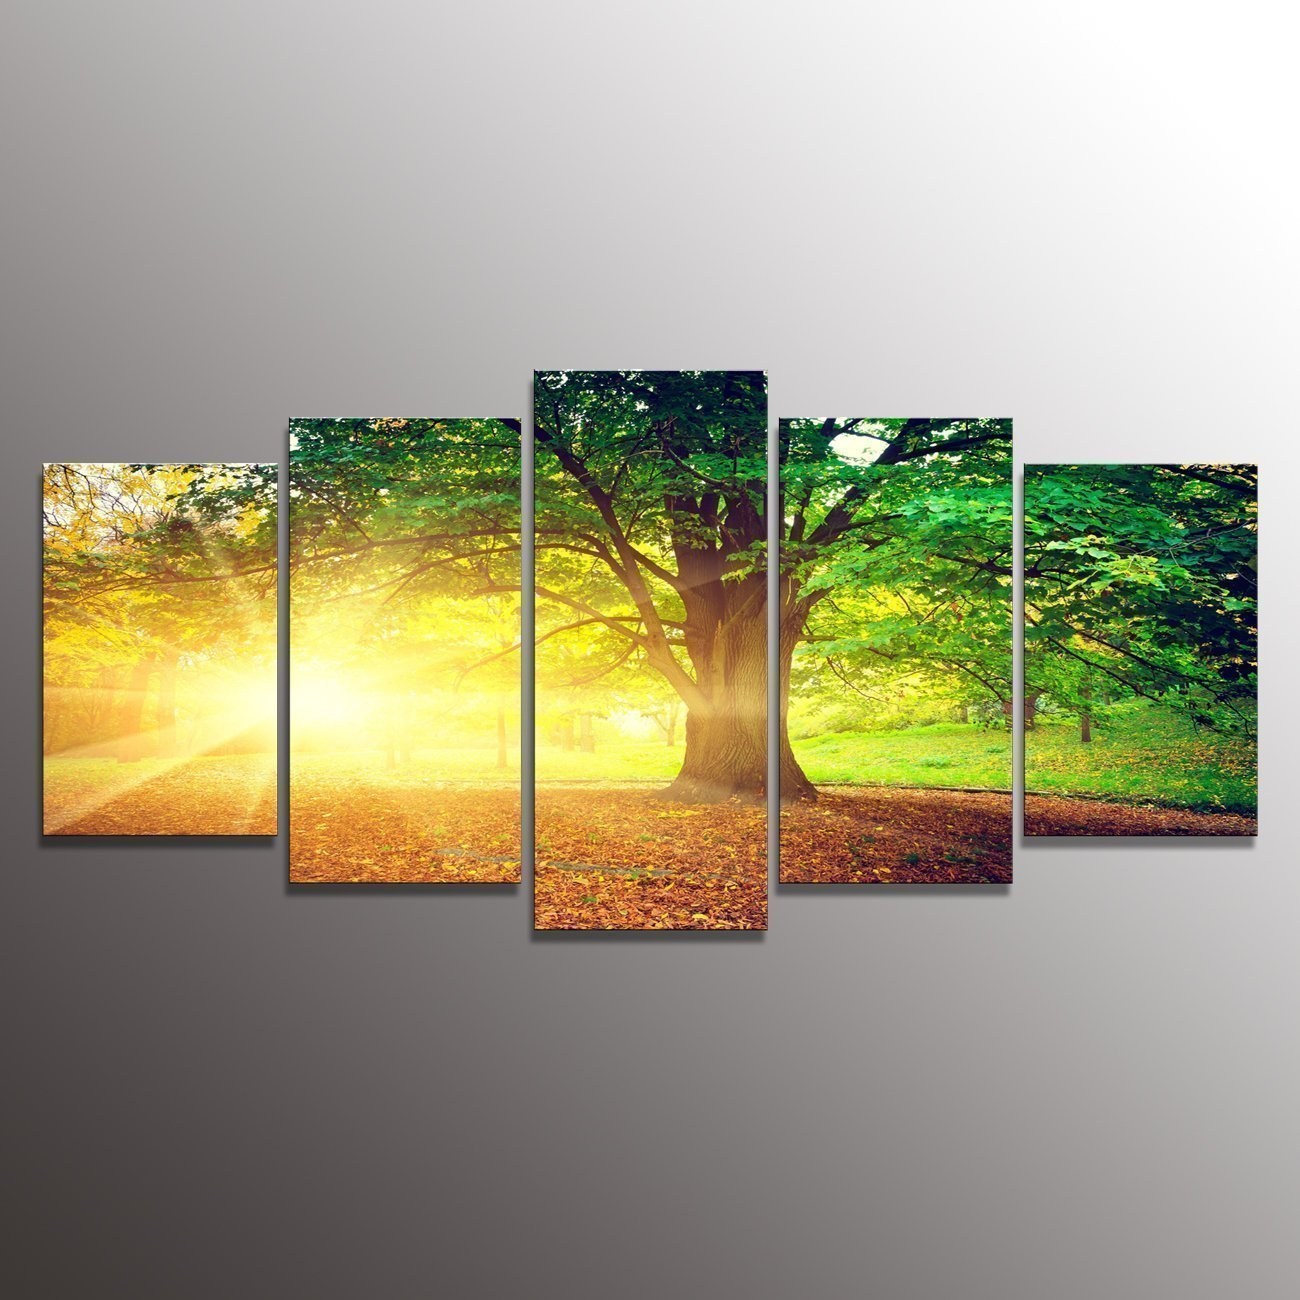 Amazon.com: Formarkor Art Kx334 Canvas Print Green Forest Old Trees ...